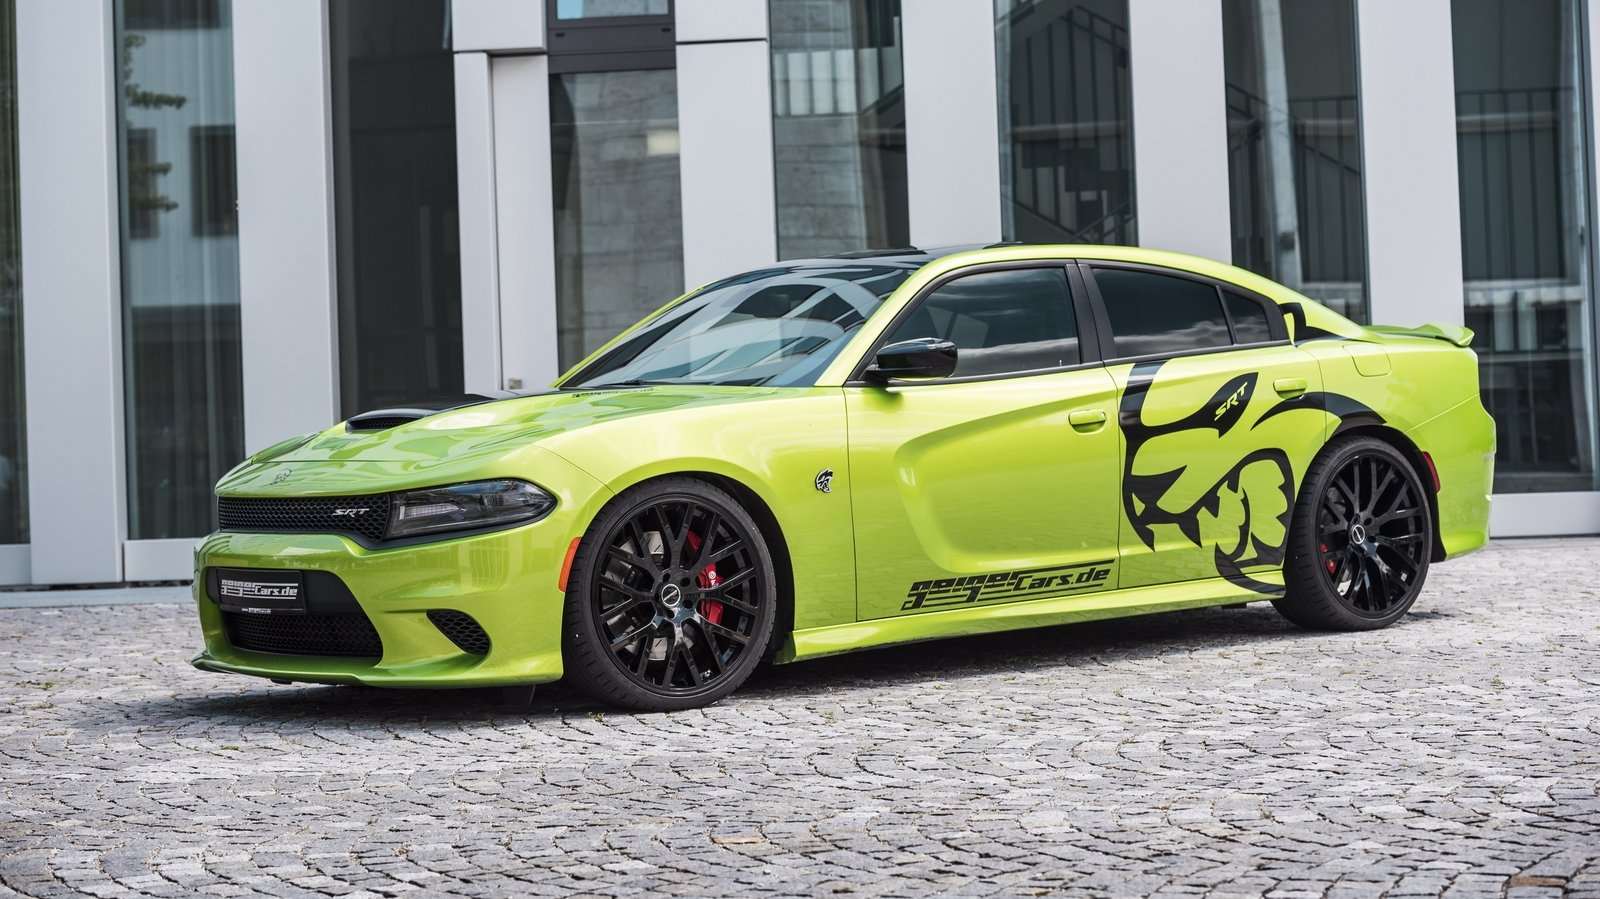 2016 dodge charger srt hellcat by geiger cars picture 689113 car review top speed. Black Bedroom Furniture Sets. Home Design Ideas